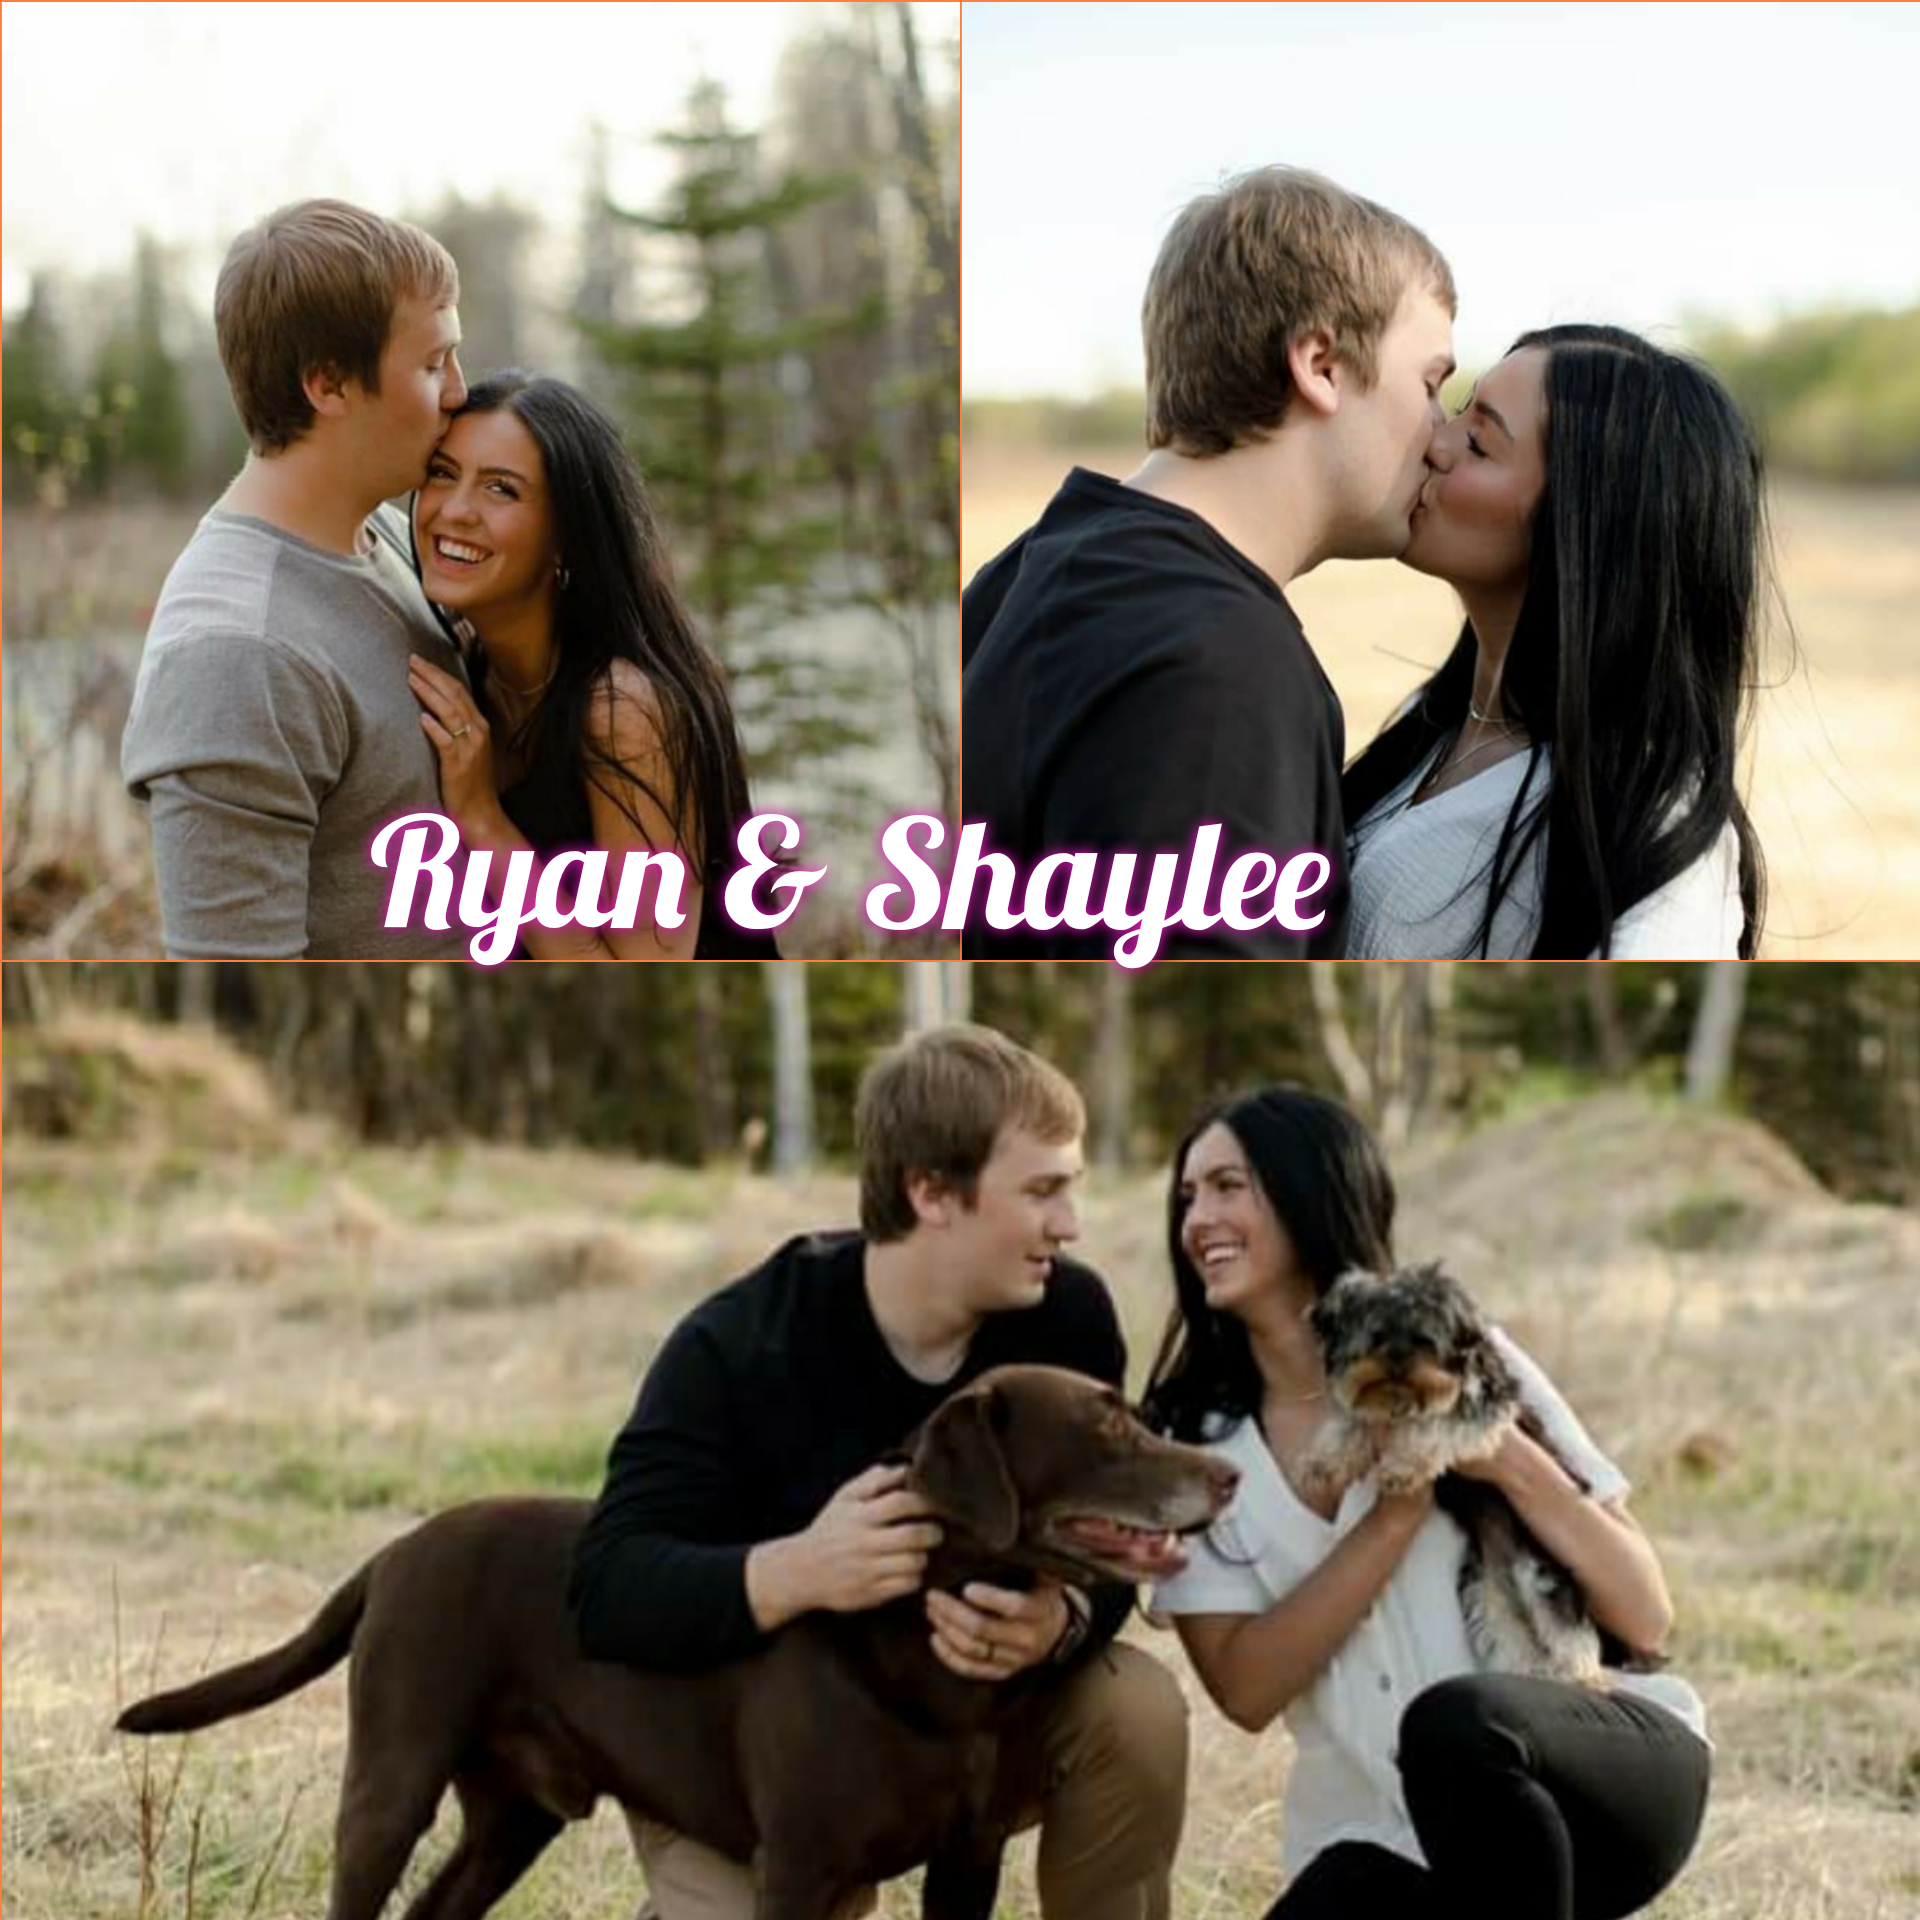 So Ryan and fiancé Shaylee